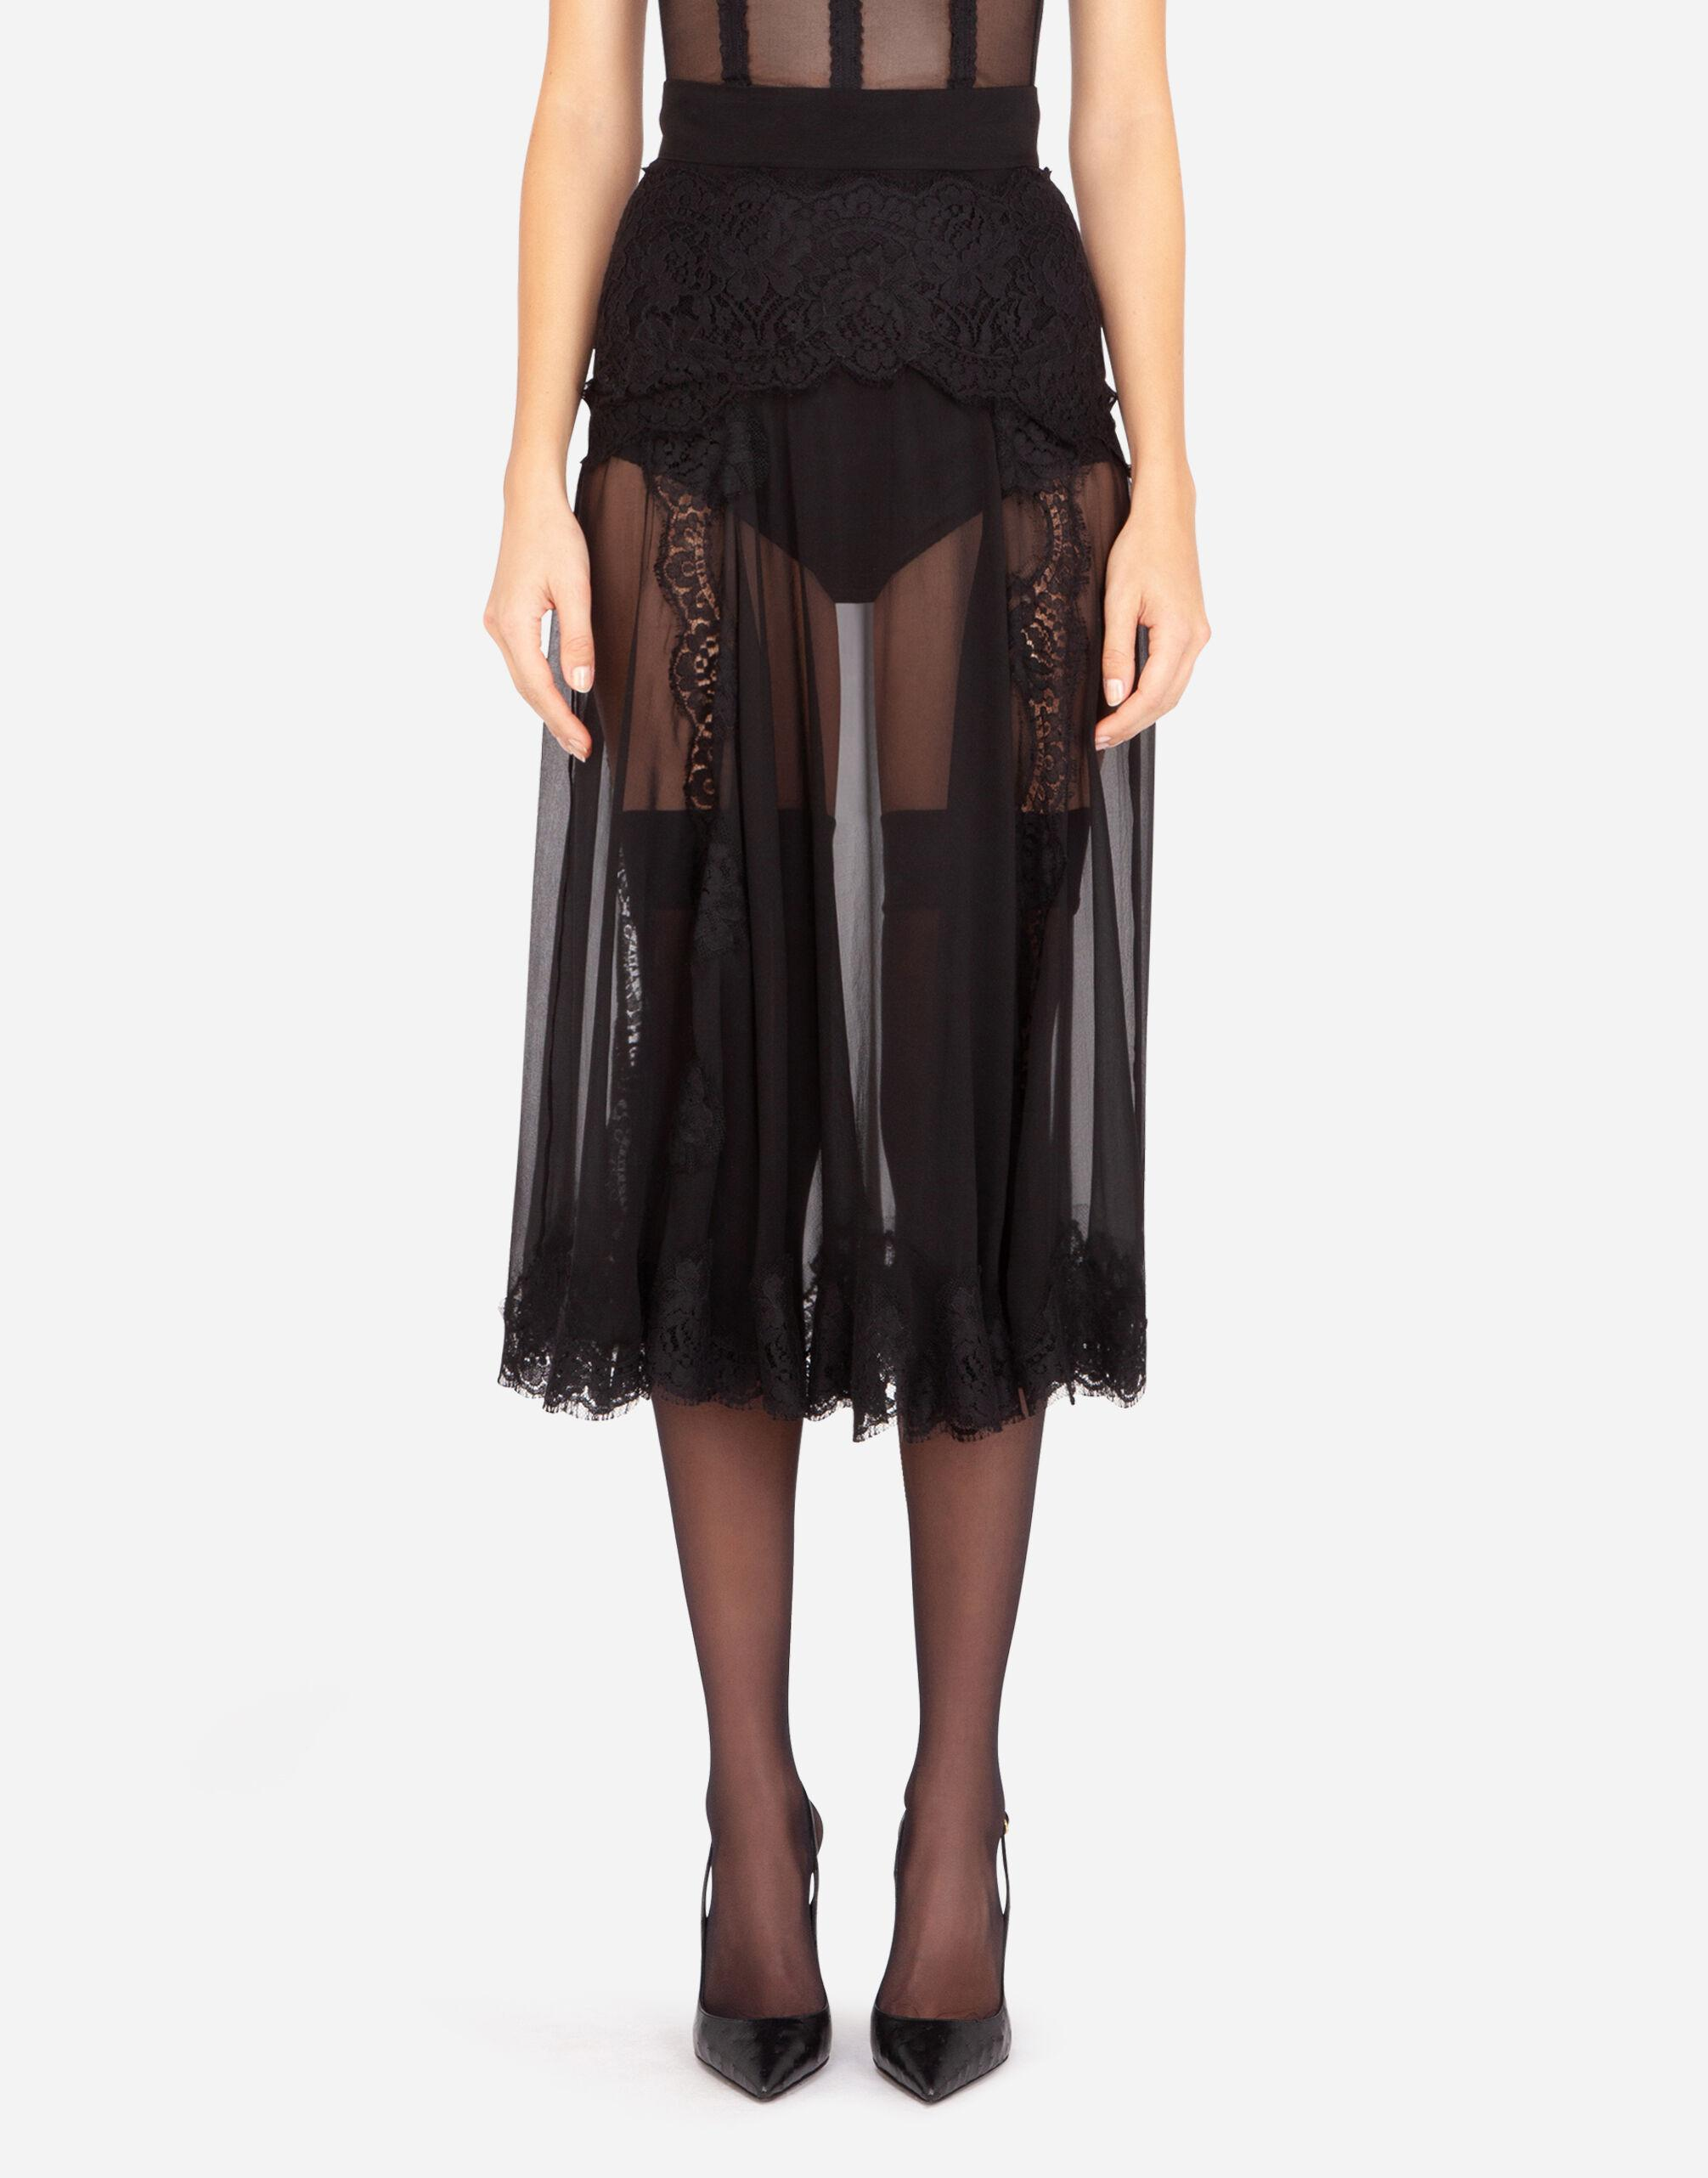 Longuette skirt in chiffon and chantilly lace